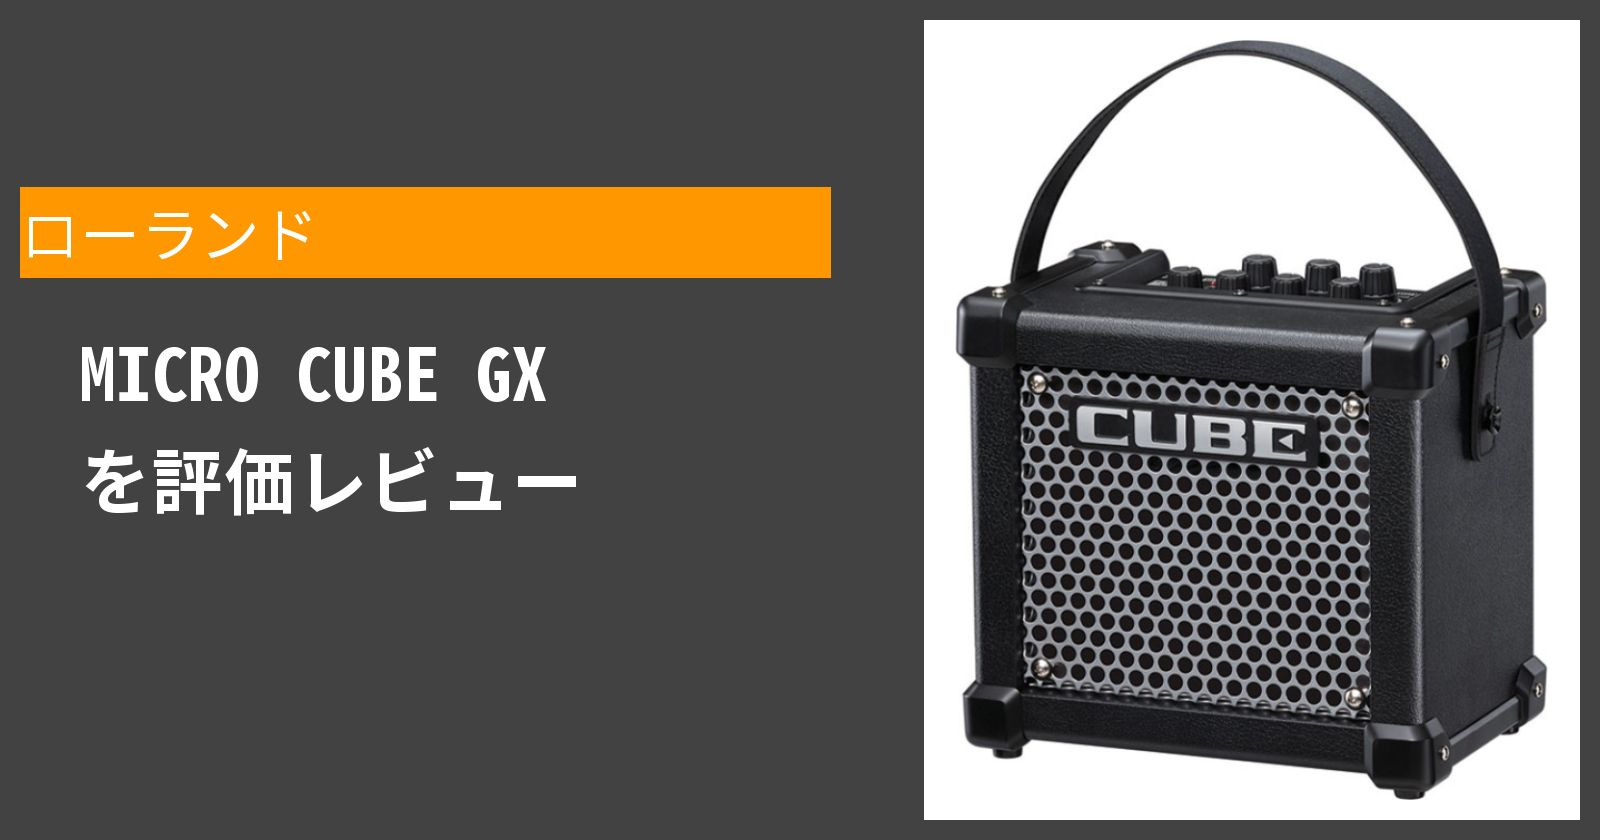 MICRO CUBE GXを徹底評価